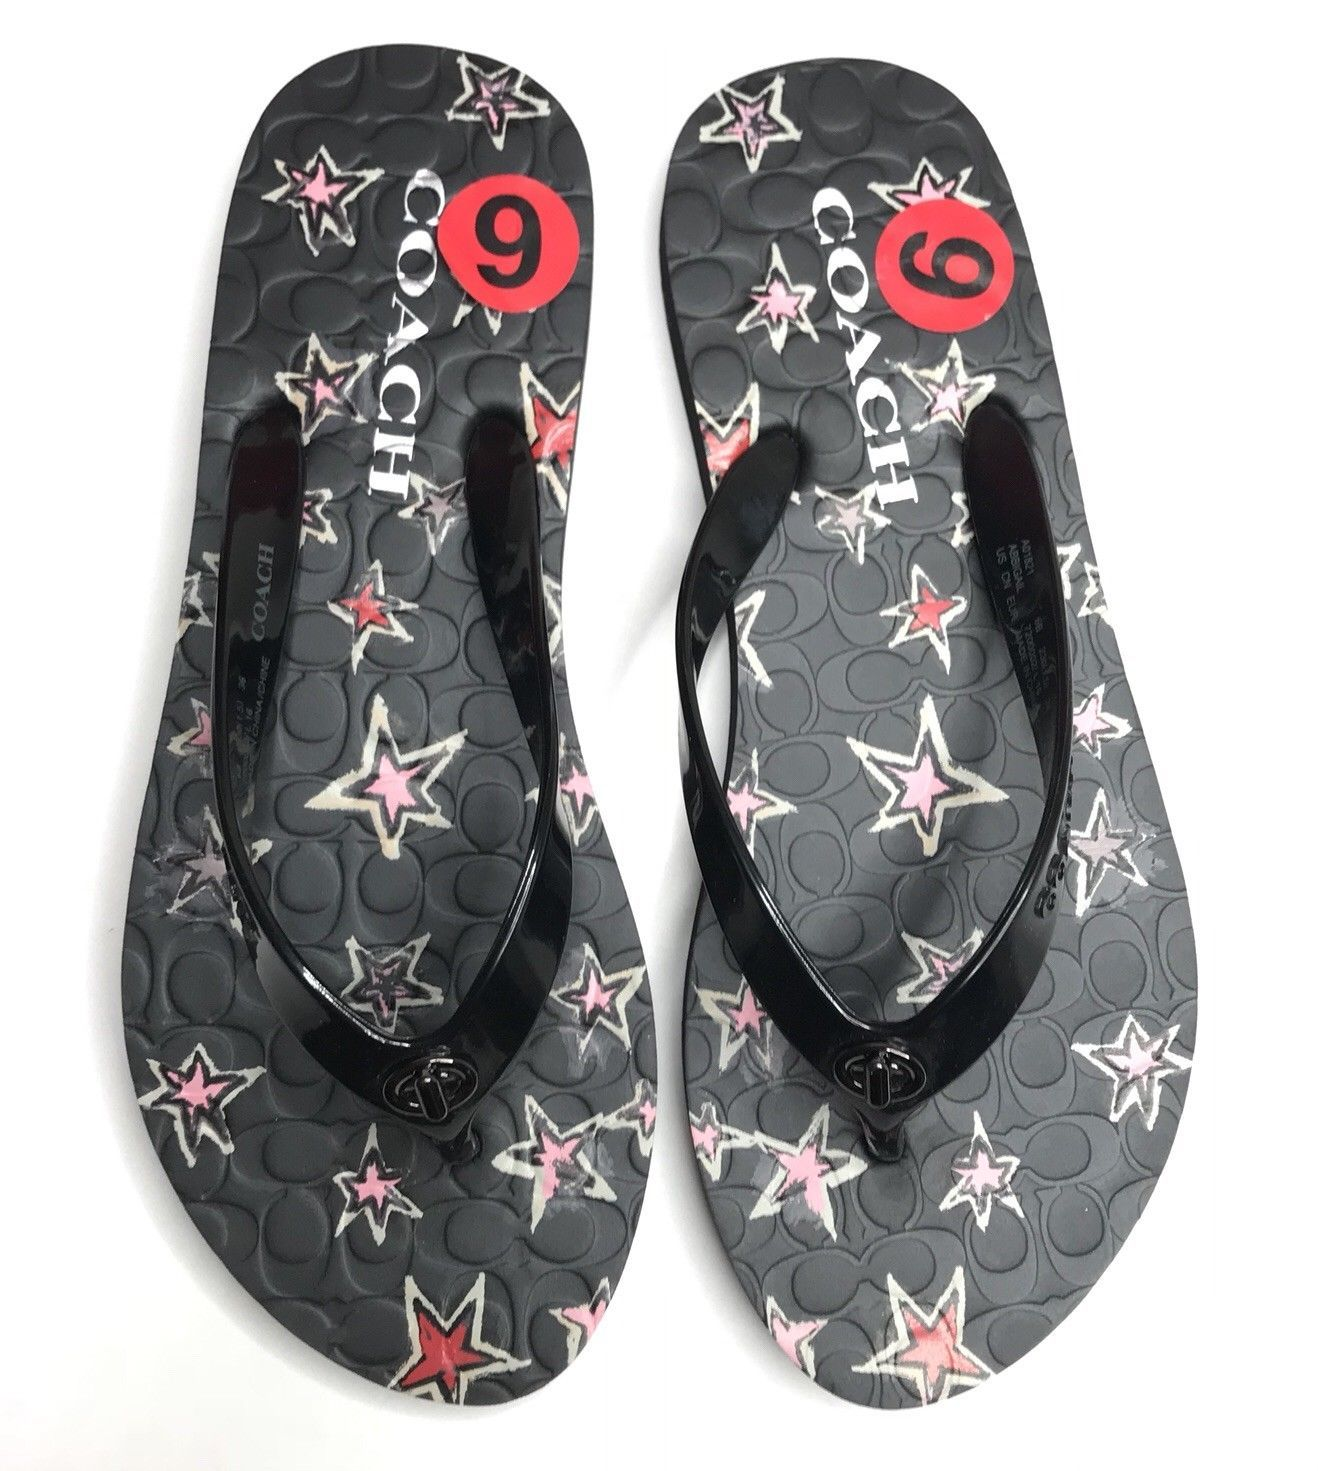 bc50fa1b2 Coach Flip Flops NEW Women Size 5-6 Black and 30 similar items